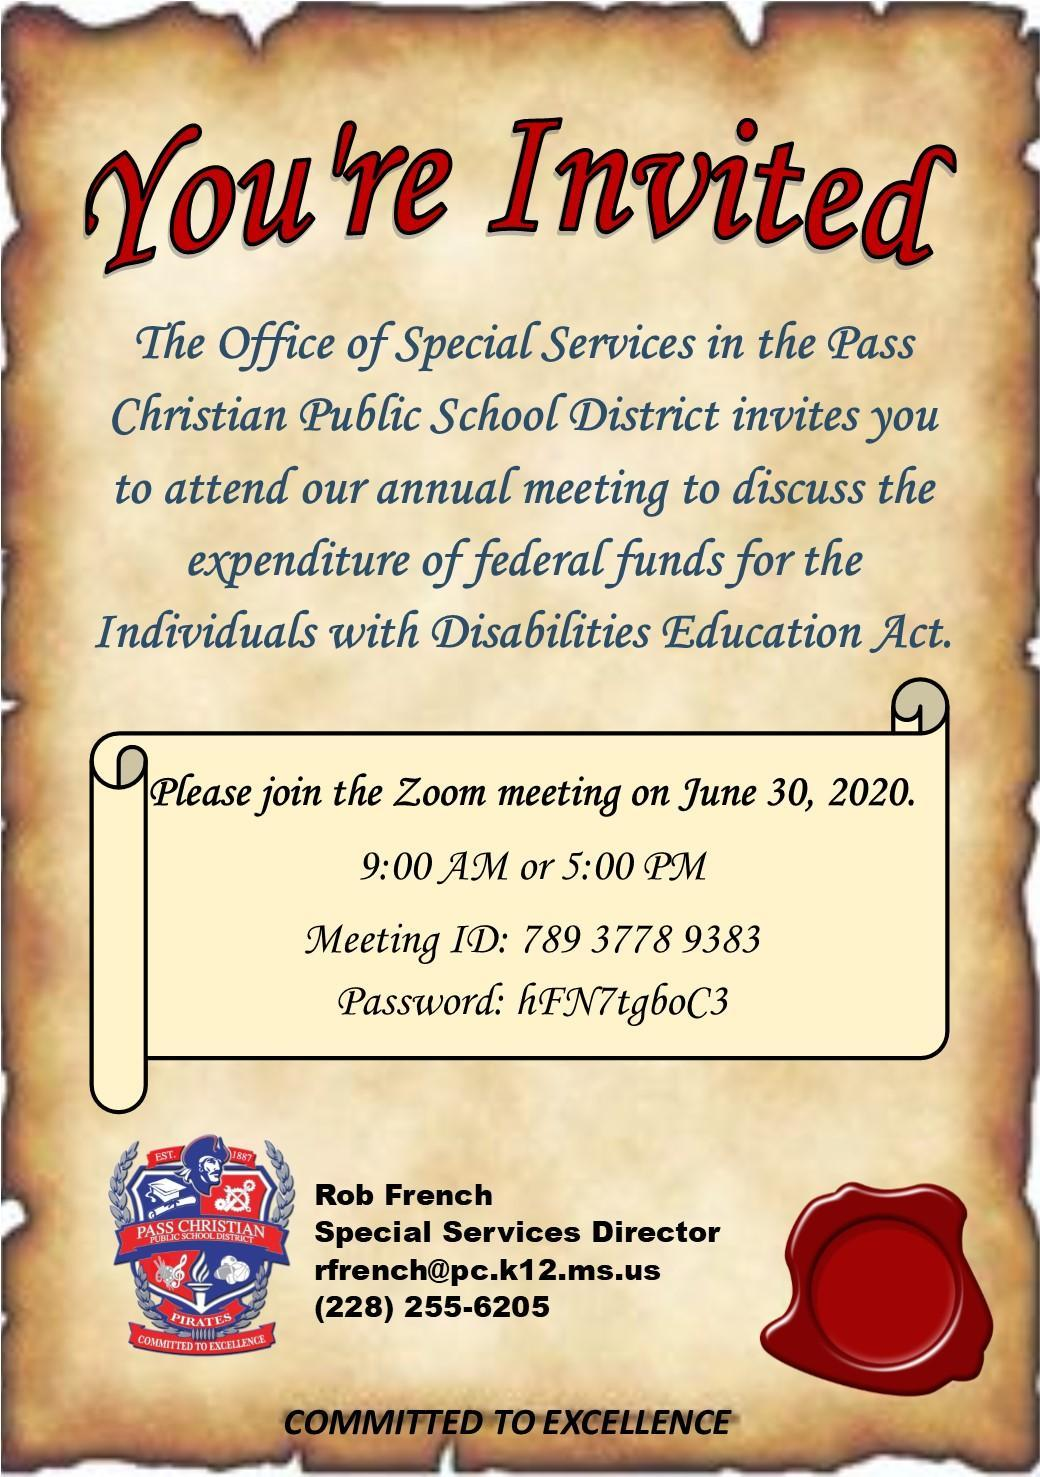 Invitation to the annual budget meeting for the expenditure of federal special education funds.